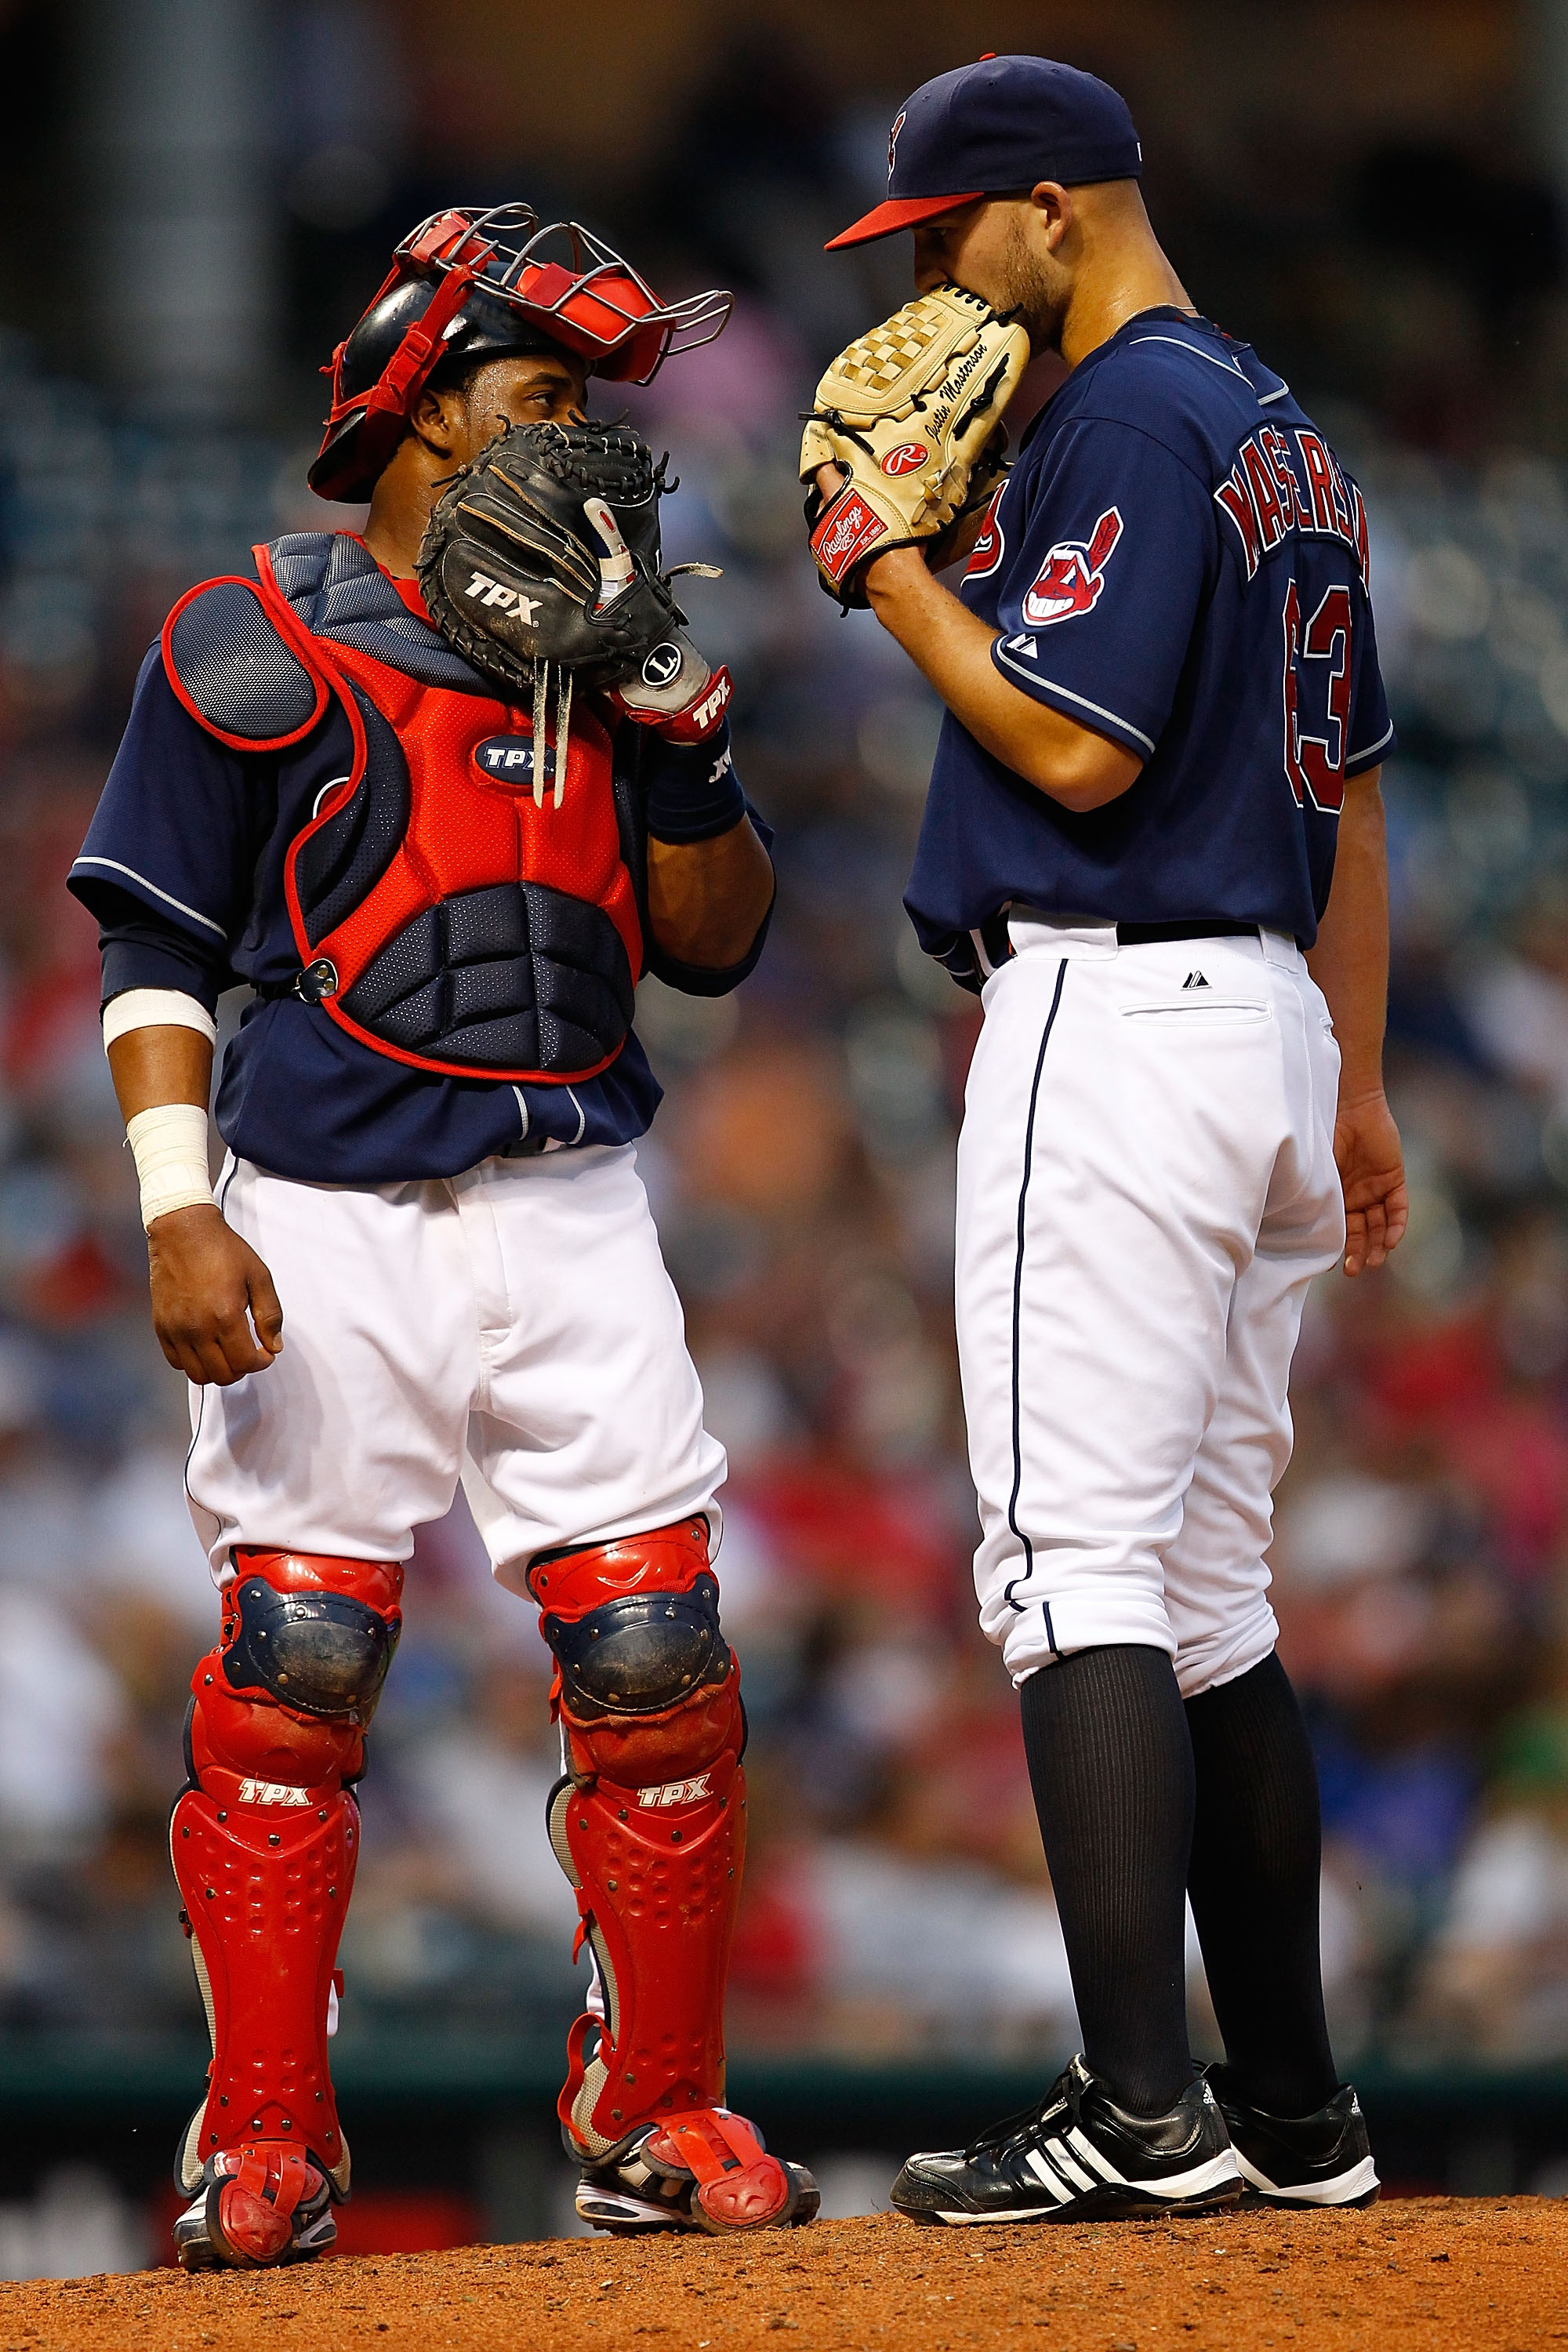 CLEVELAND - JUNE 15:  Carlos Santana #41 of the Cleveland Indians talks with teammate Justin Masterson #63 at the mound during the game against the New York Mets on June 15, 2010 at Progressive Field in Cleveland, Ohio.  (Photo by Jared Wickerham/Getty Im